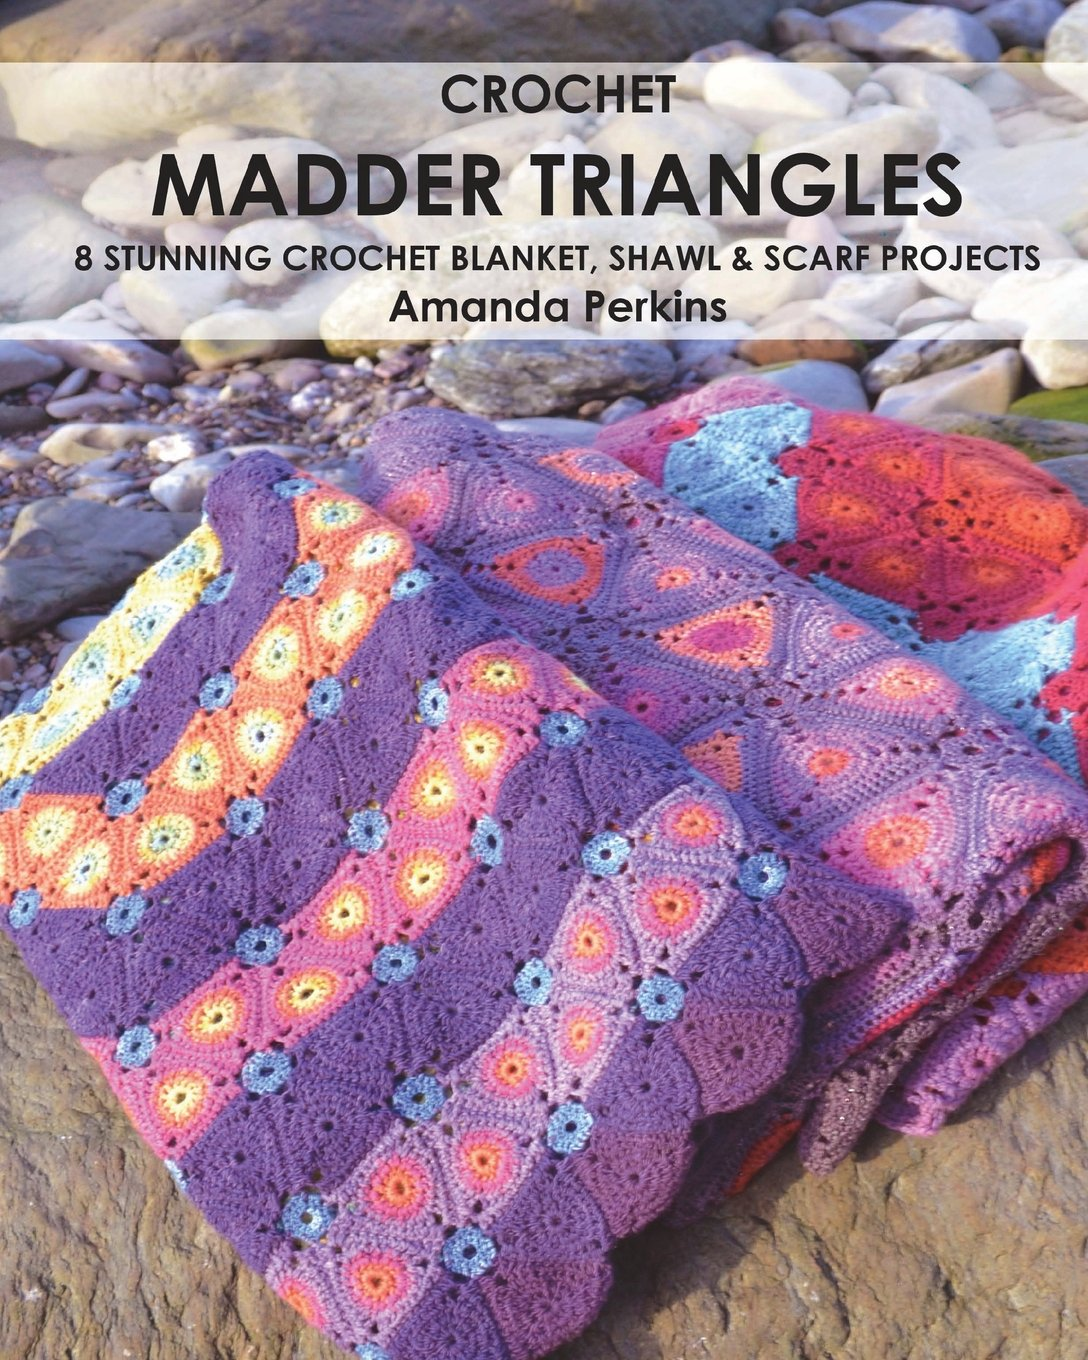 Crochet Madder Triangles: 8 exciting crochet projects, including blankets,  scarves & shawls. All made with variations of a simple triangle crochet  motif.